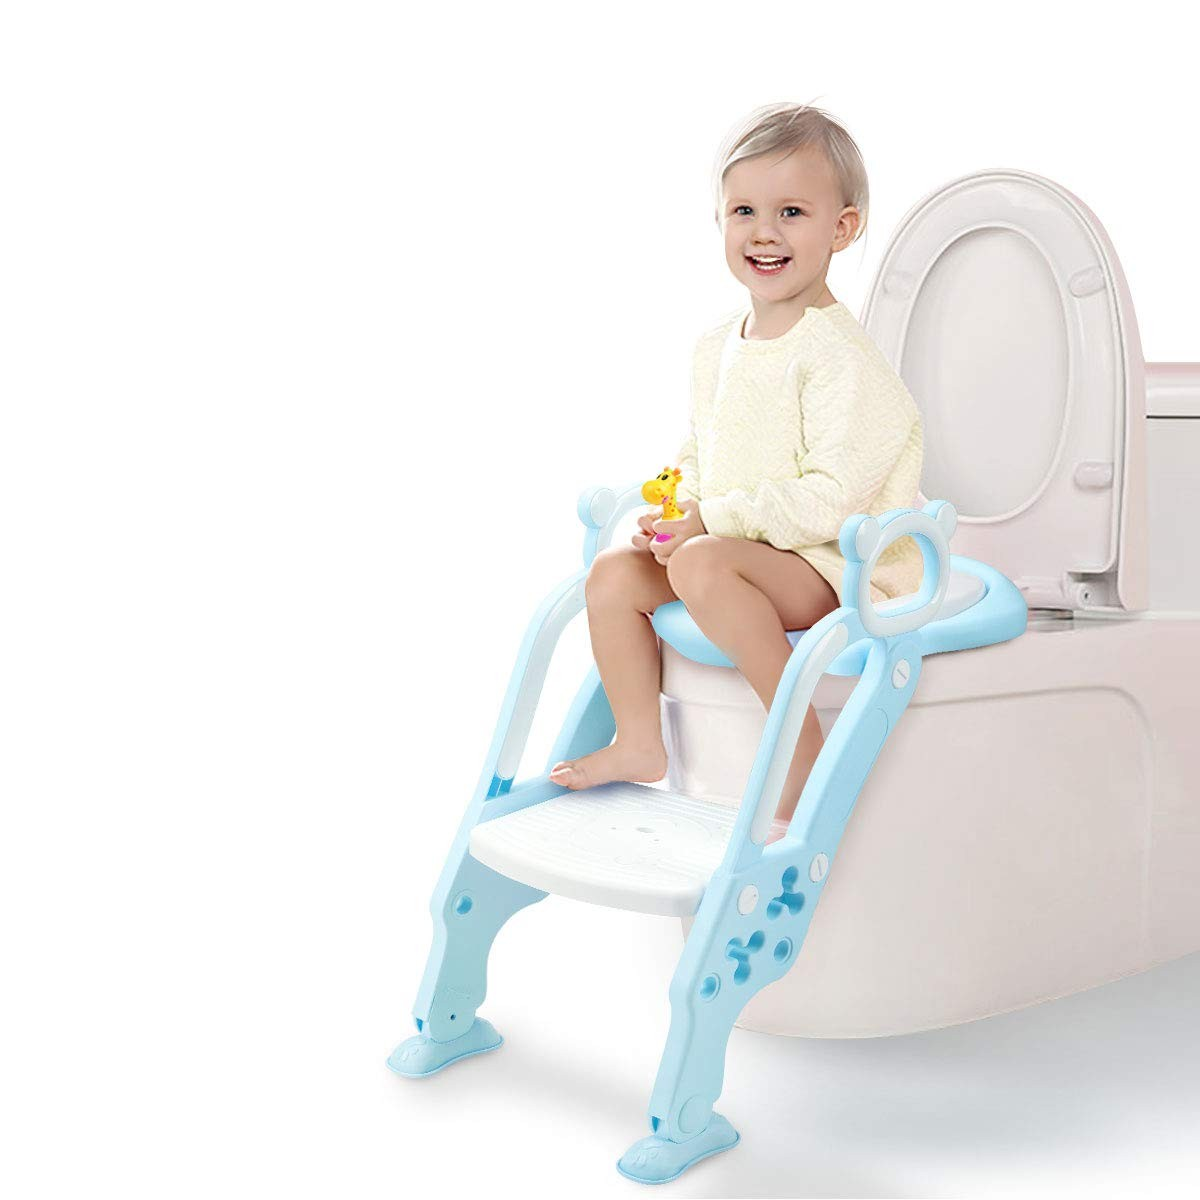 GrowthPic Potty Training Seat - Toddler Potty Seat with Sturdy Non-slip Ladder Step for Toddler